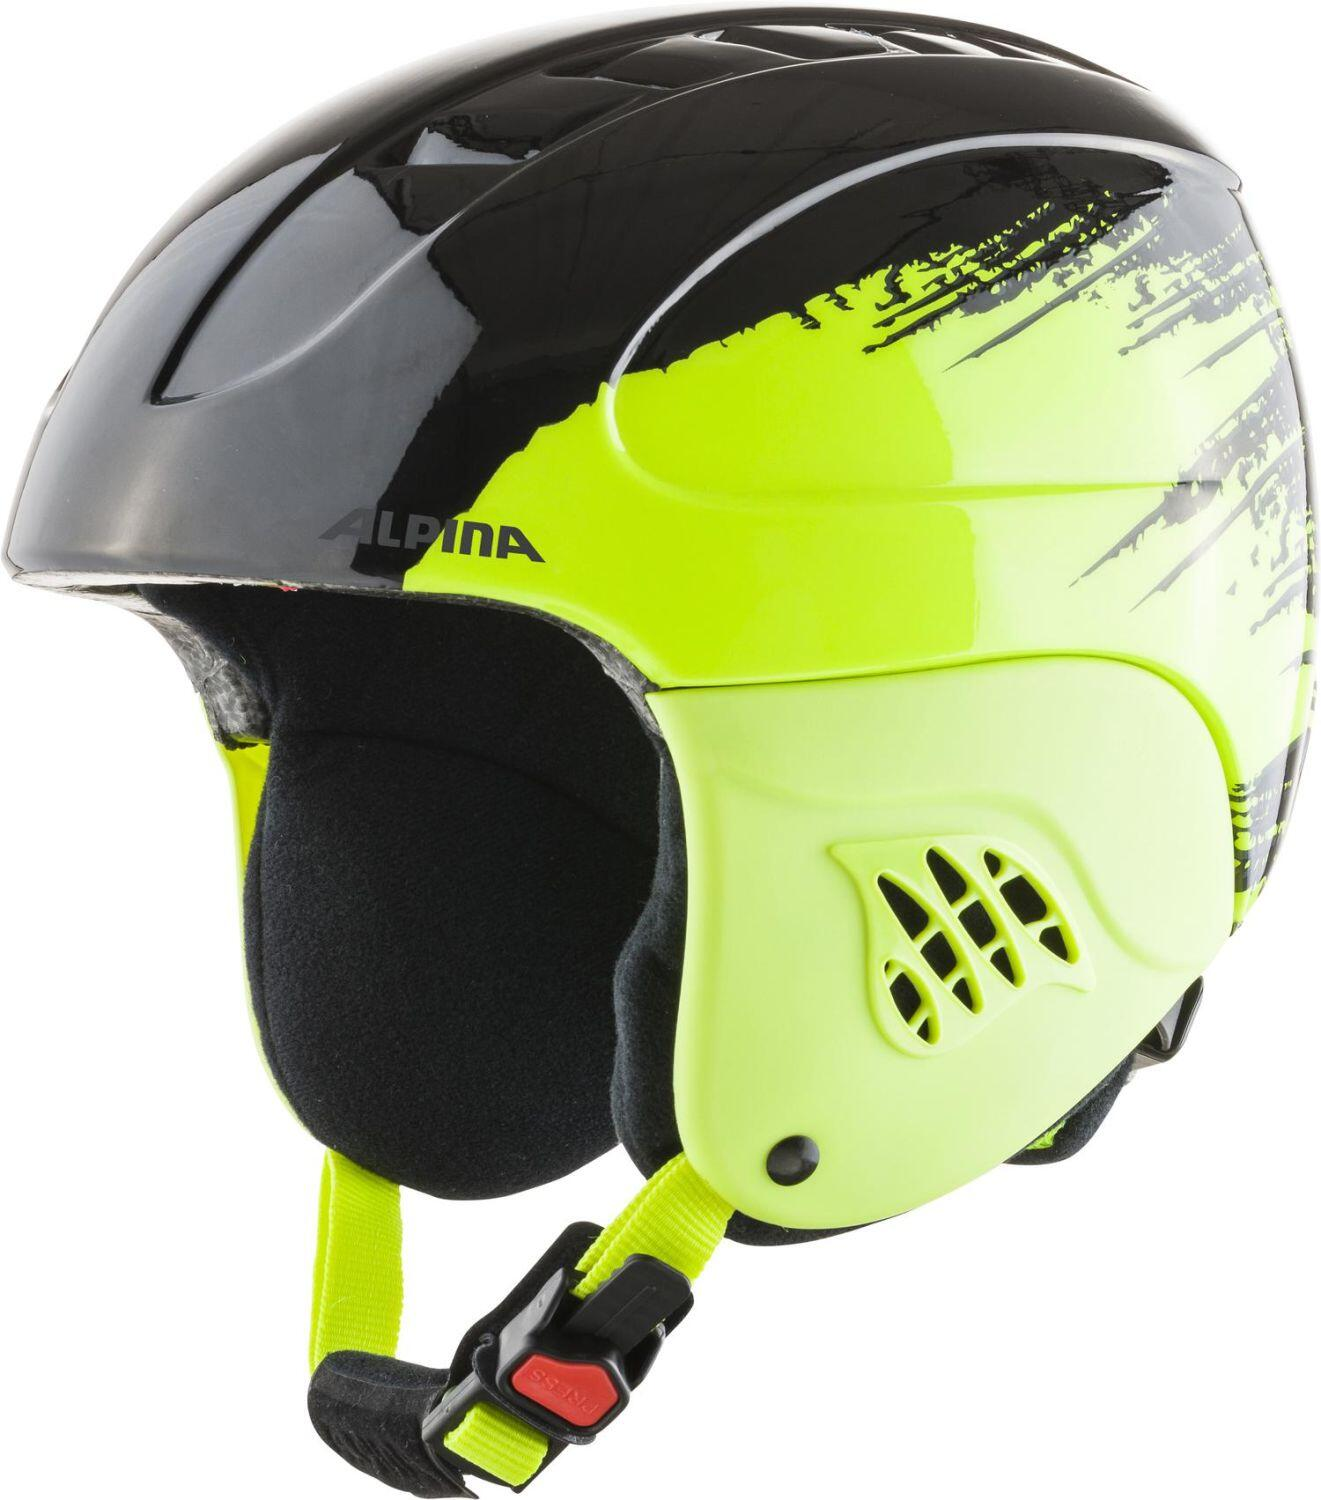 Alpina Carat Kinder Skihelm (Größe 48 52 cm, 64 black yellow gloss)